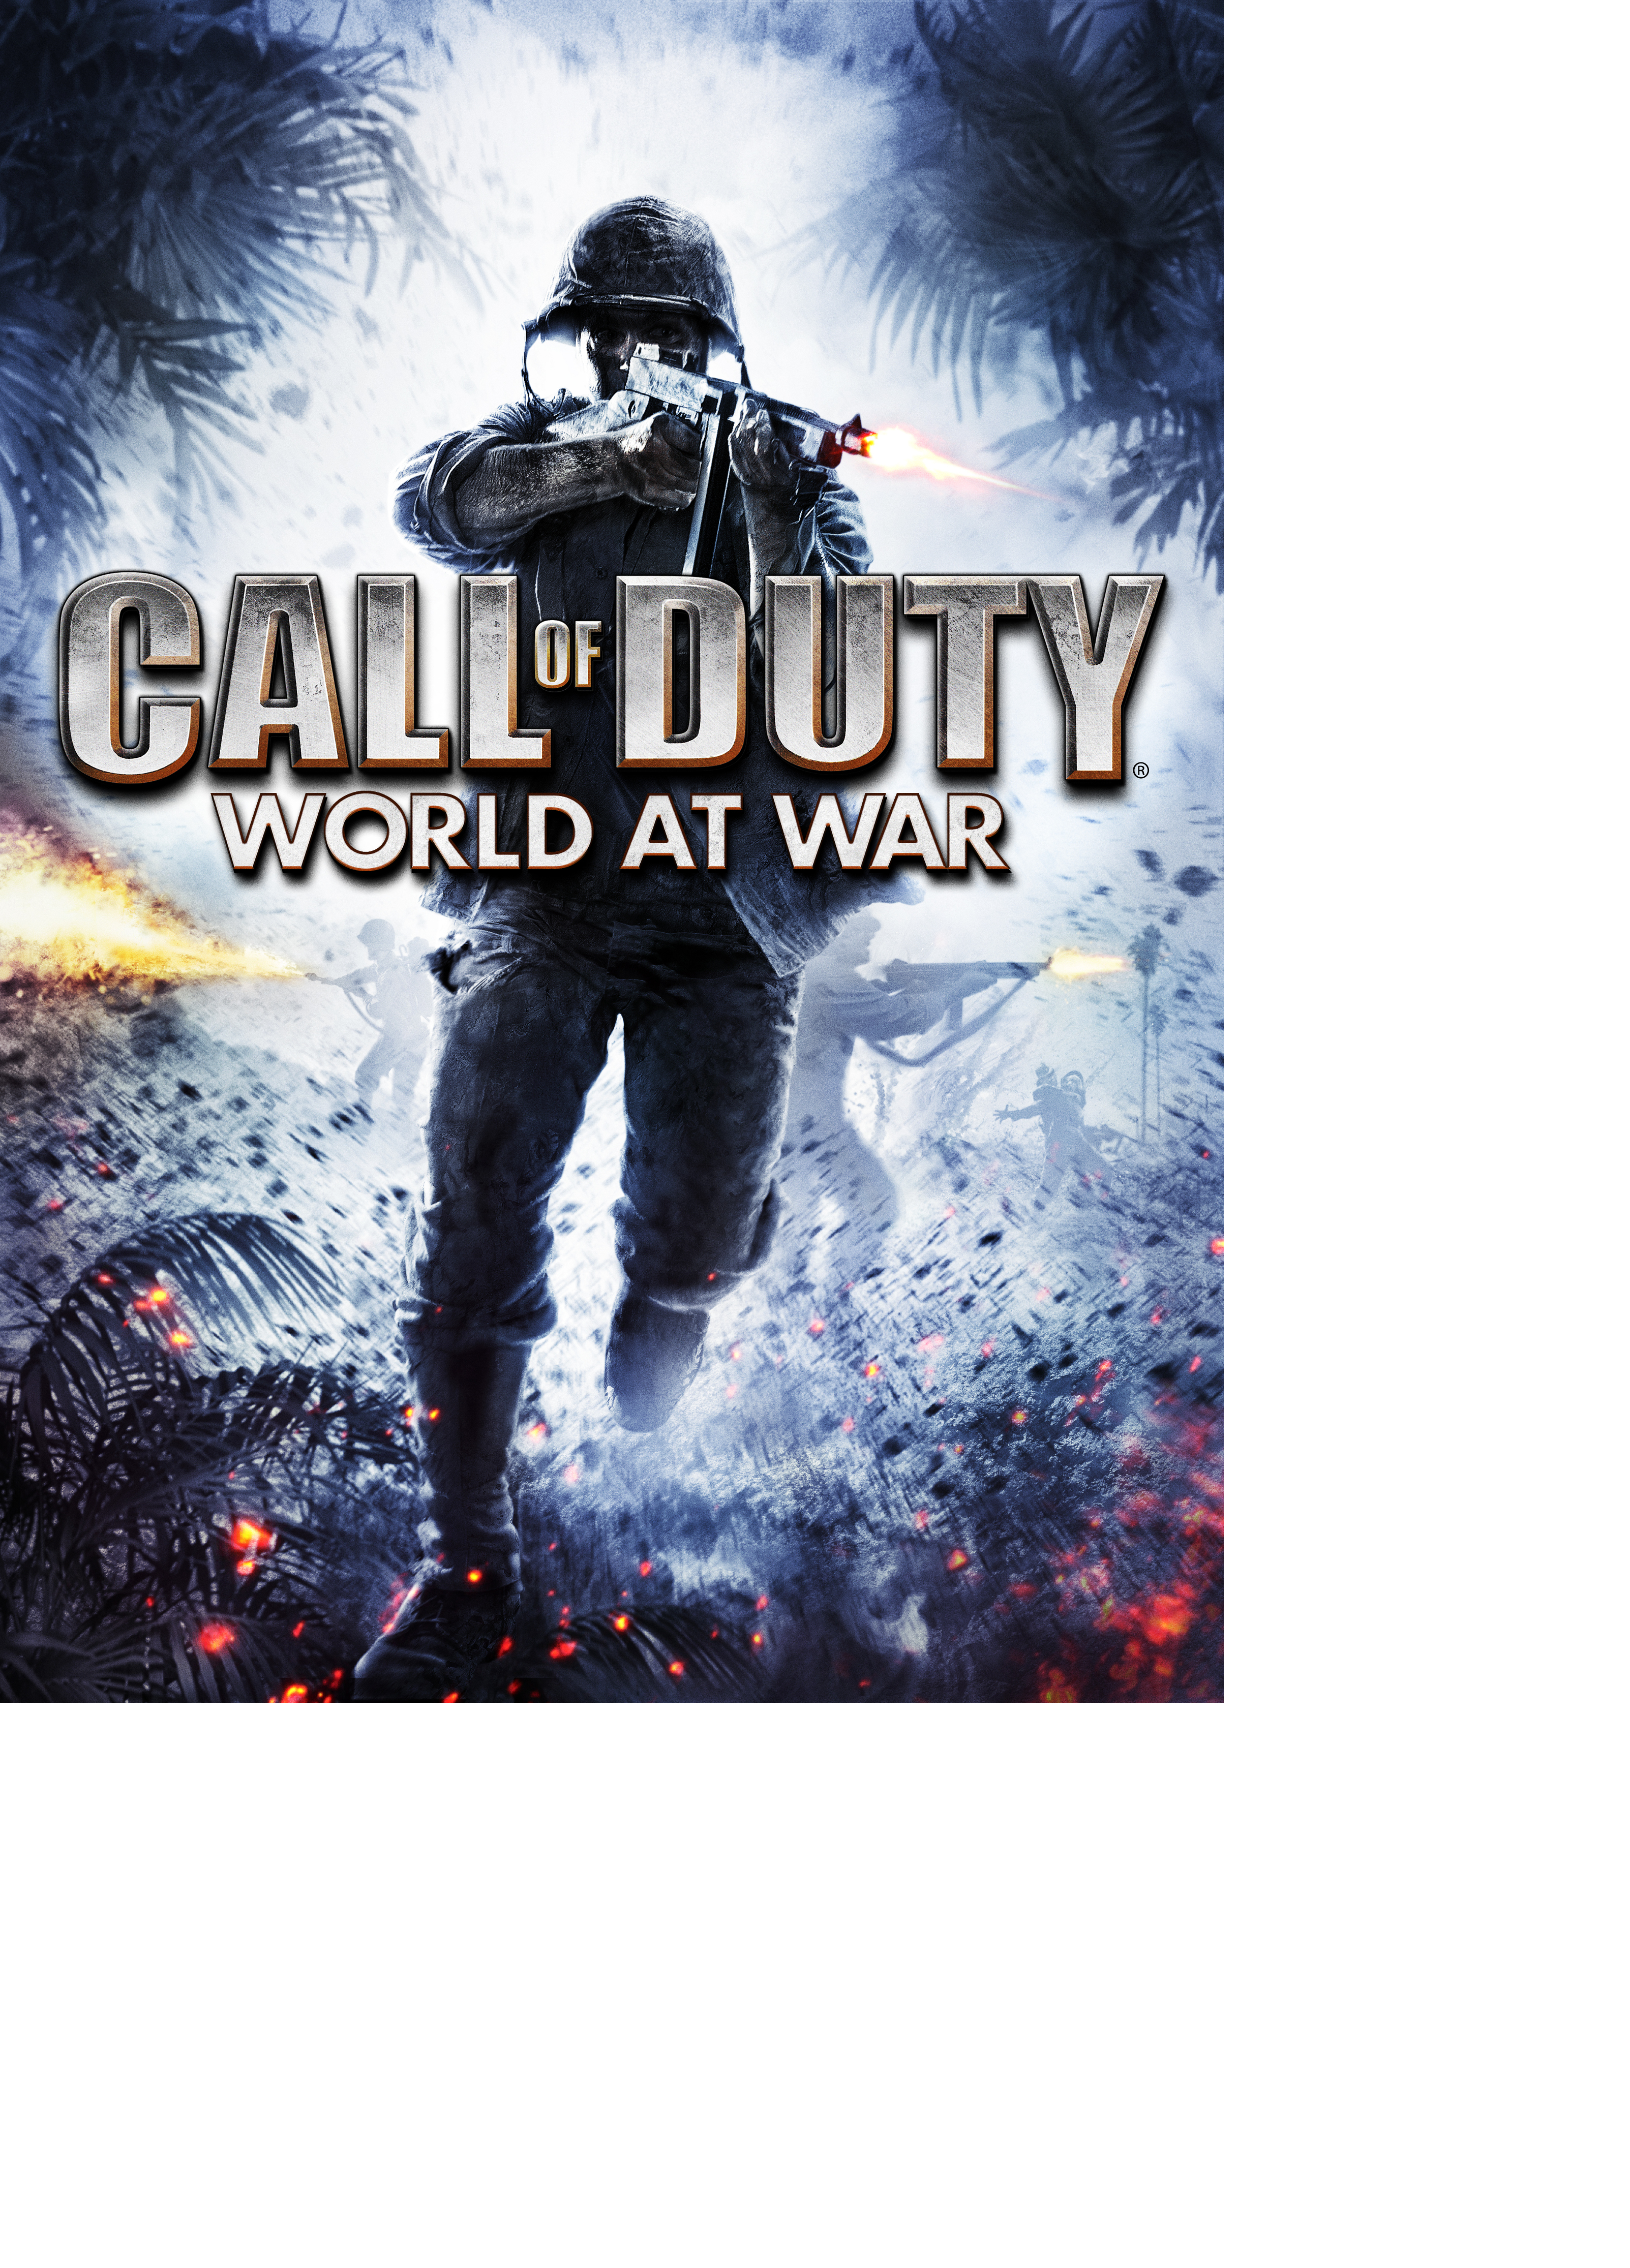 Call of duty world at war xbox 360 amazon pc video games gumiabroncs Choice Image